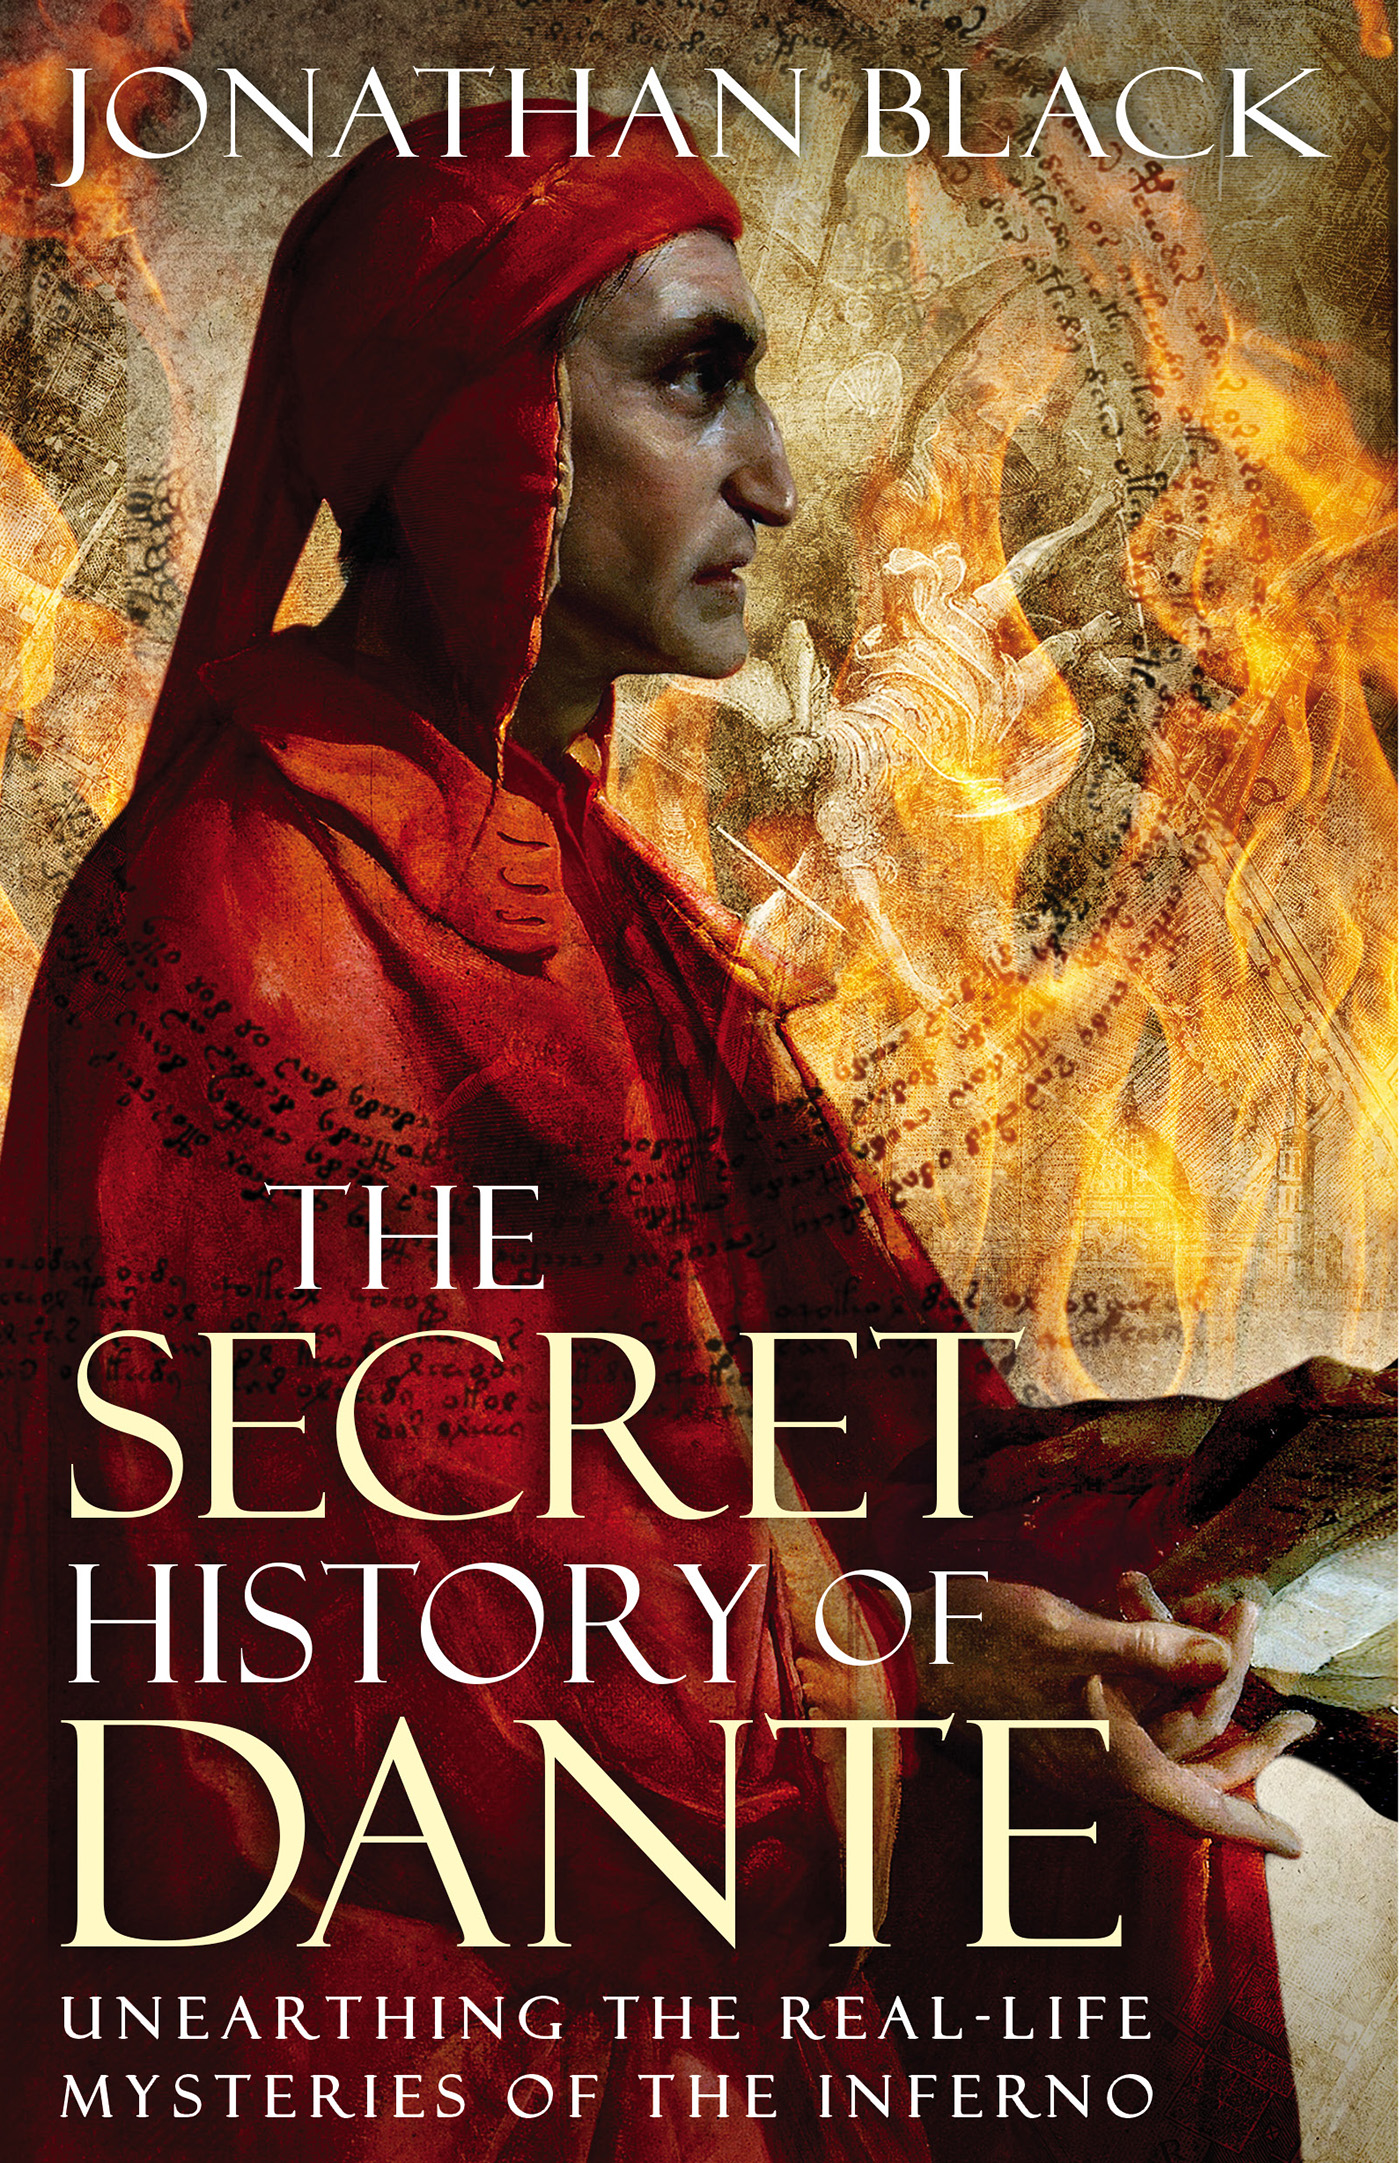 The Secret History of Dante Unearthing the Mysteries of the Inferno